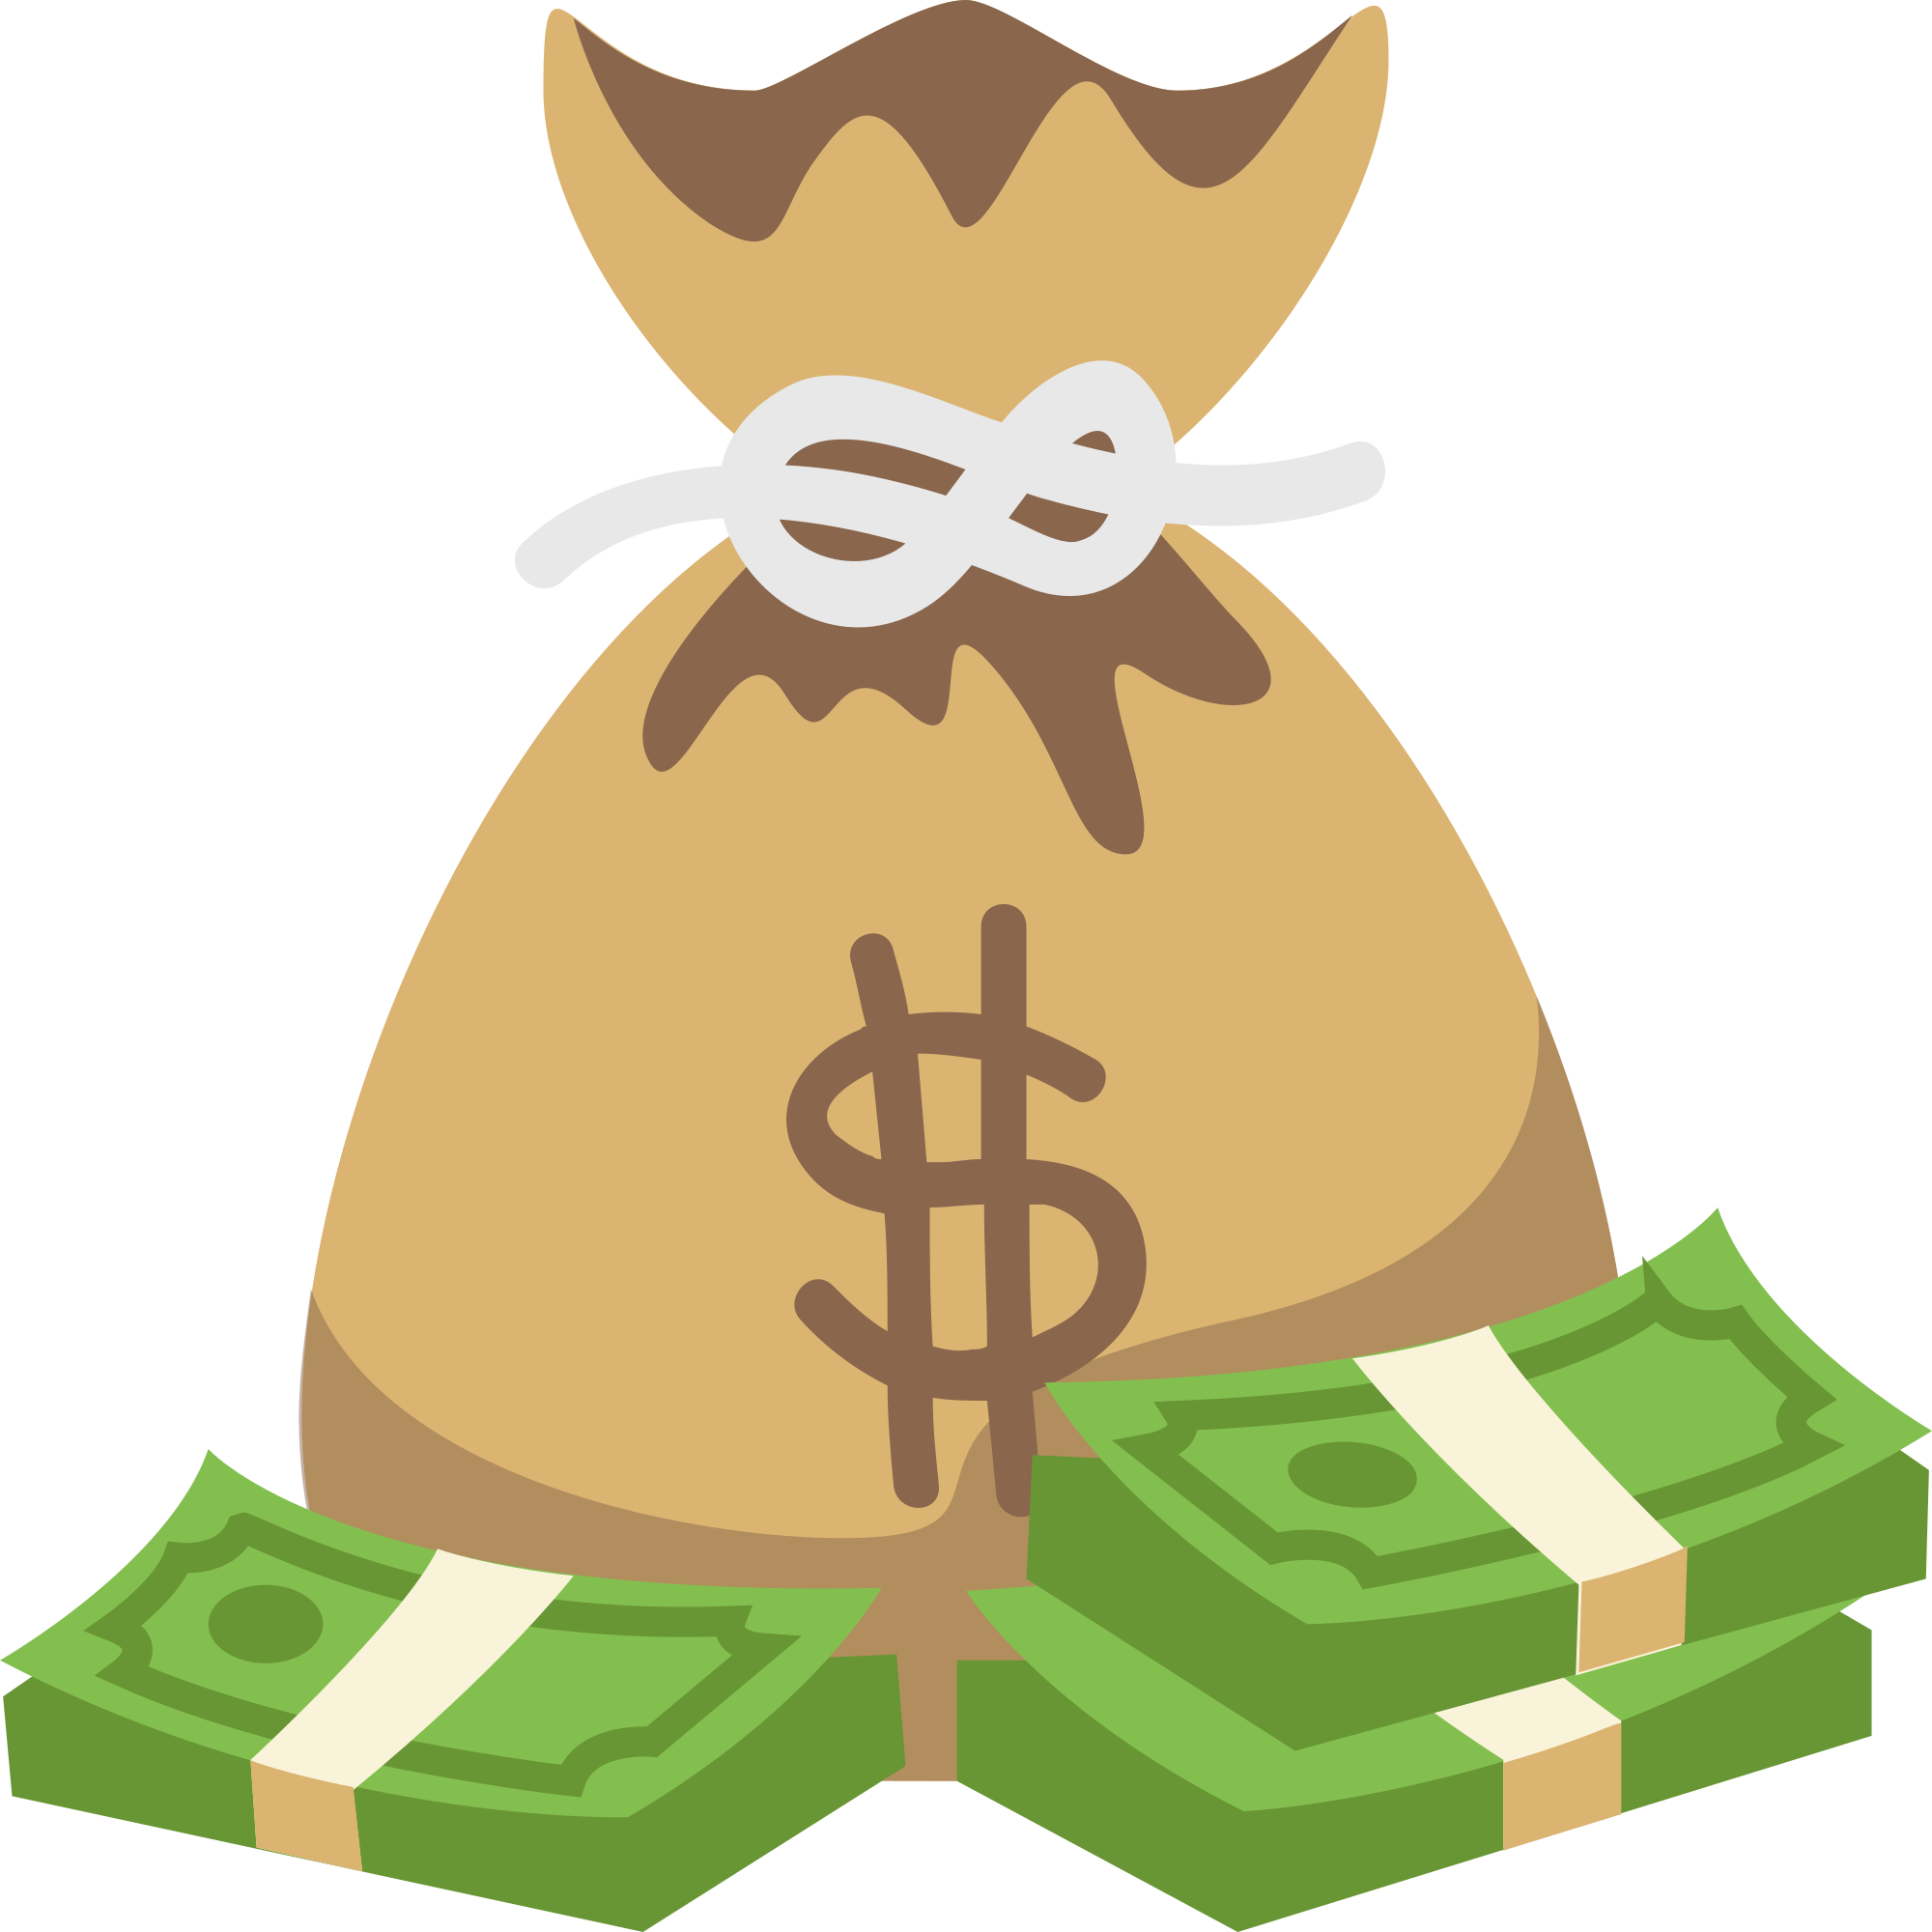 Cartoon money bag png. File emojione f b